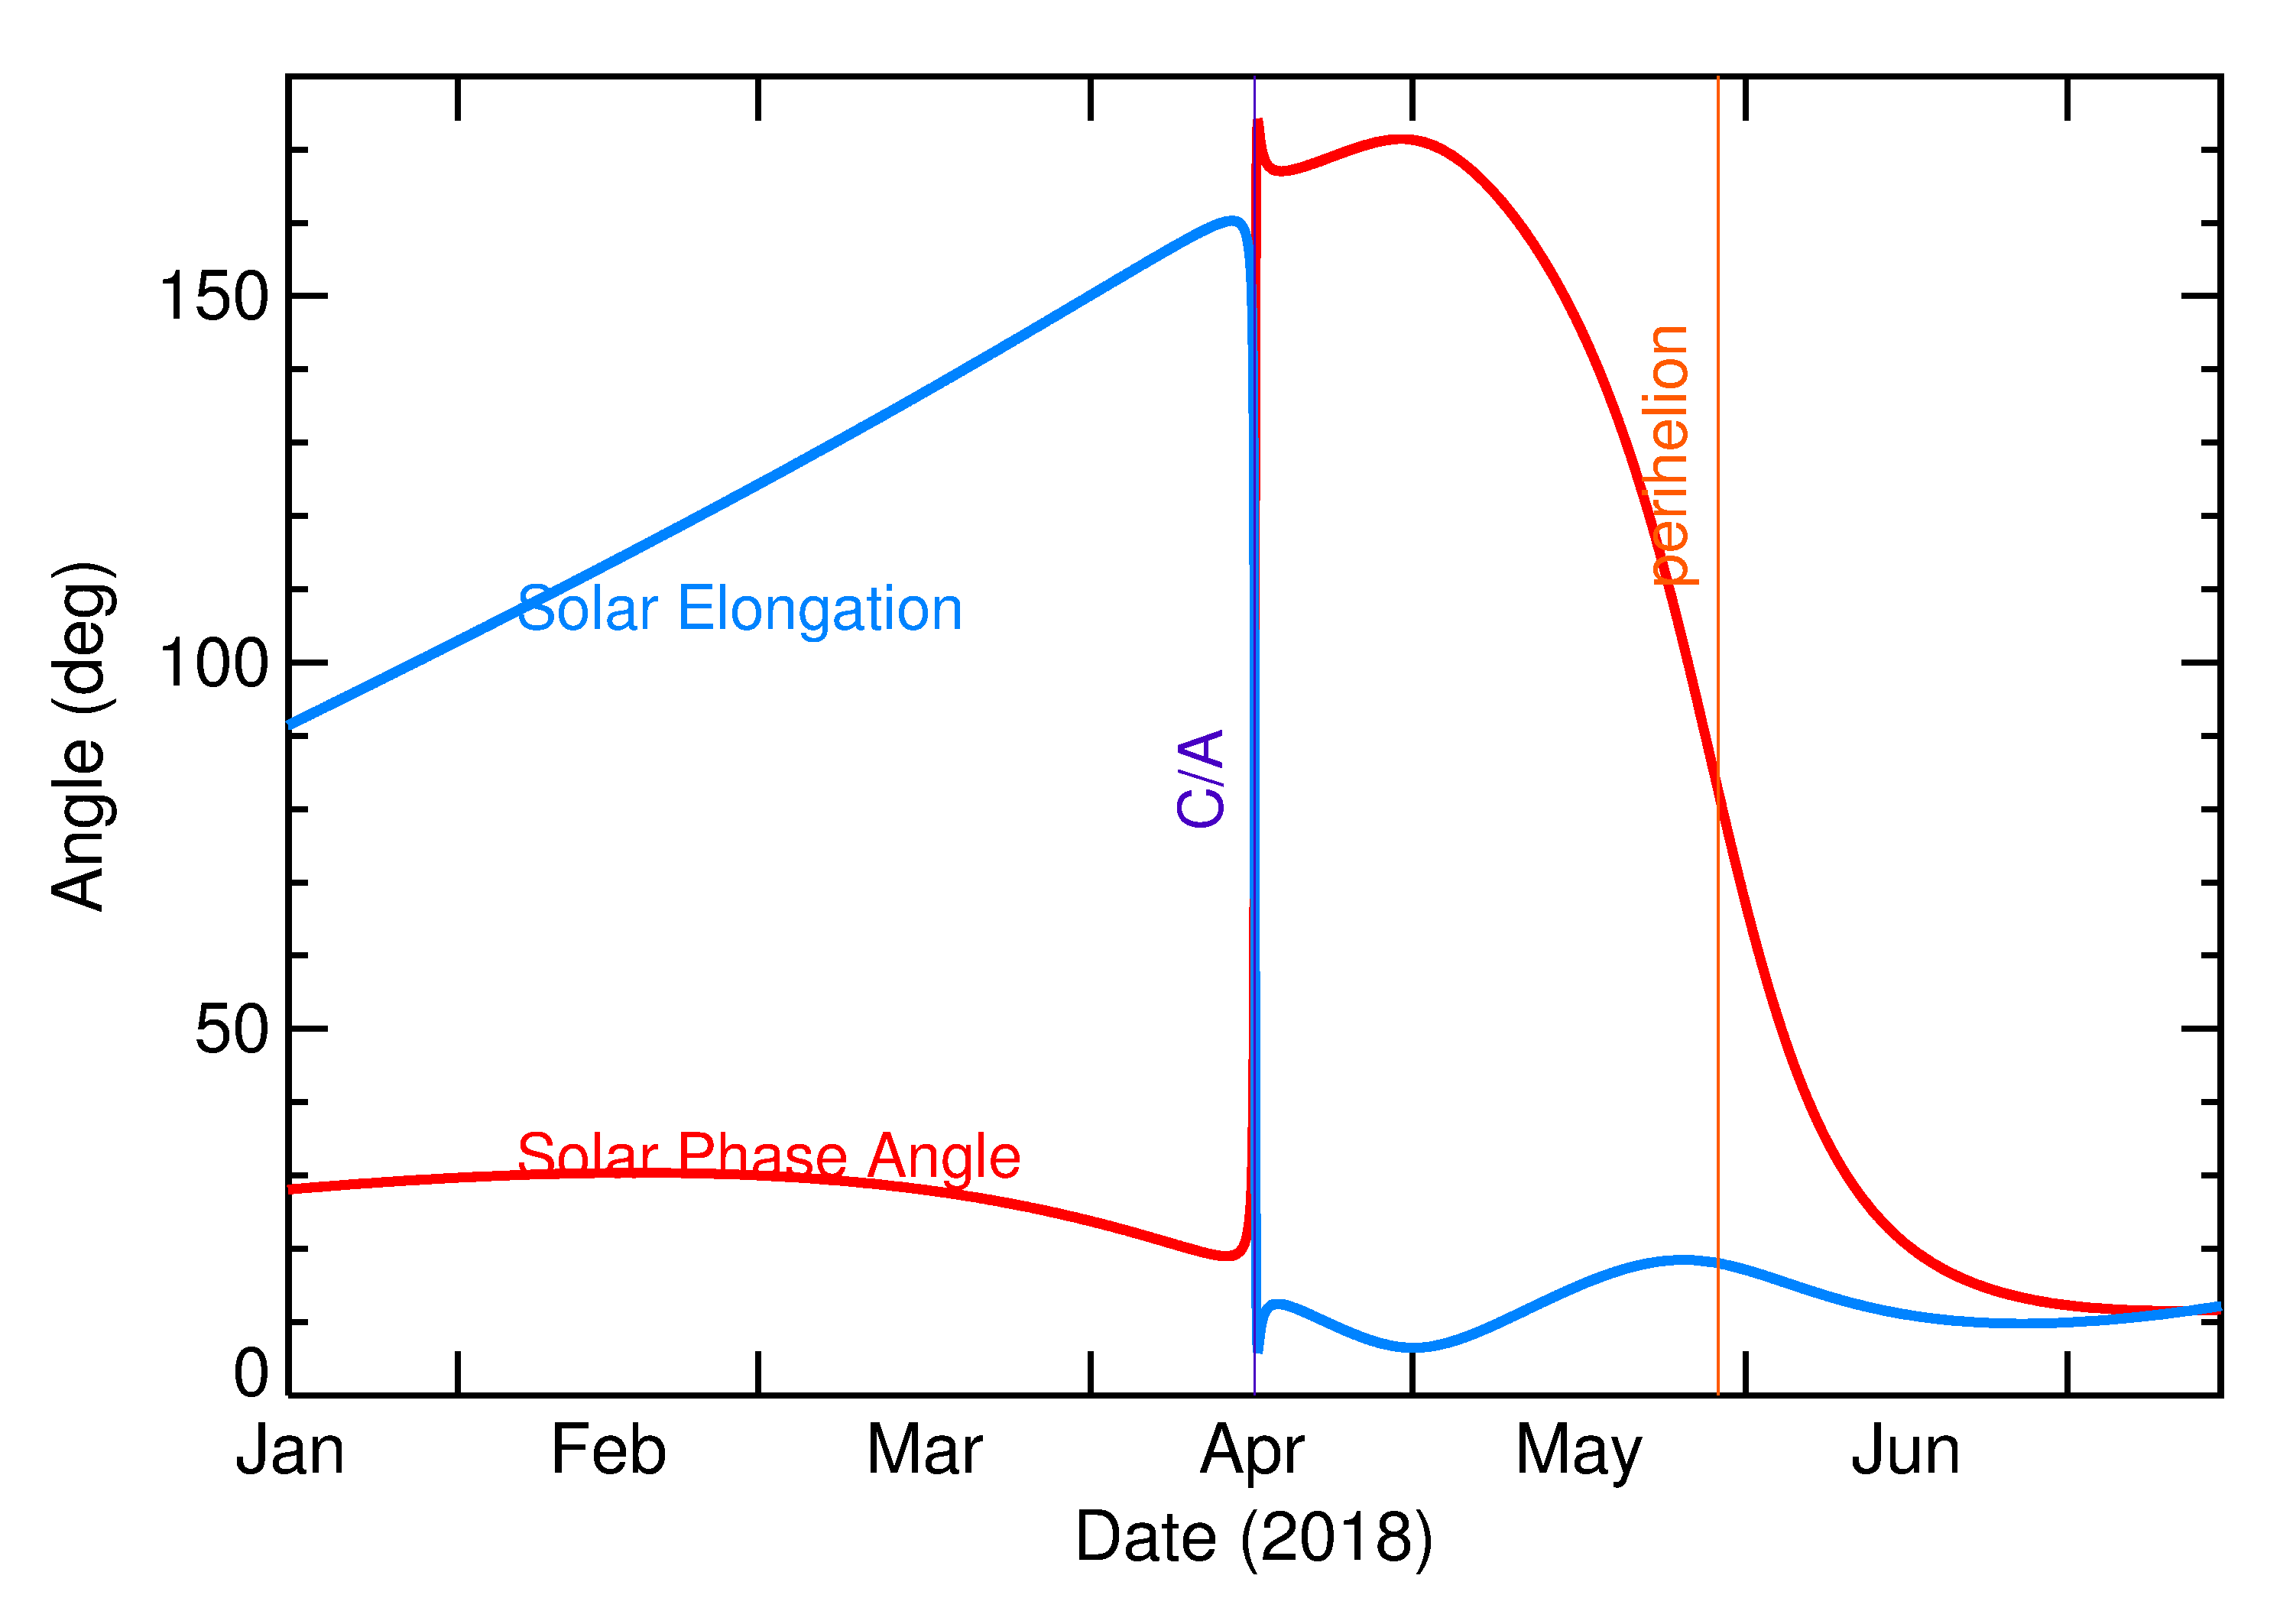 Solar Elongation and Solar Phase Angle of 2018 GE3 in the months around closest approach